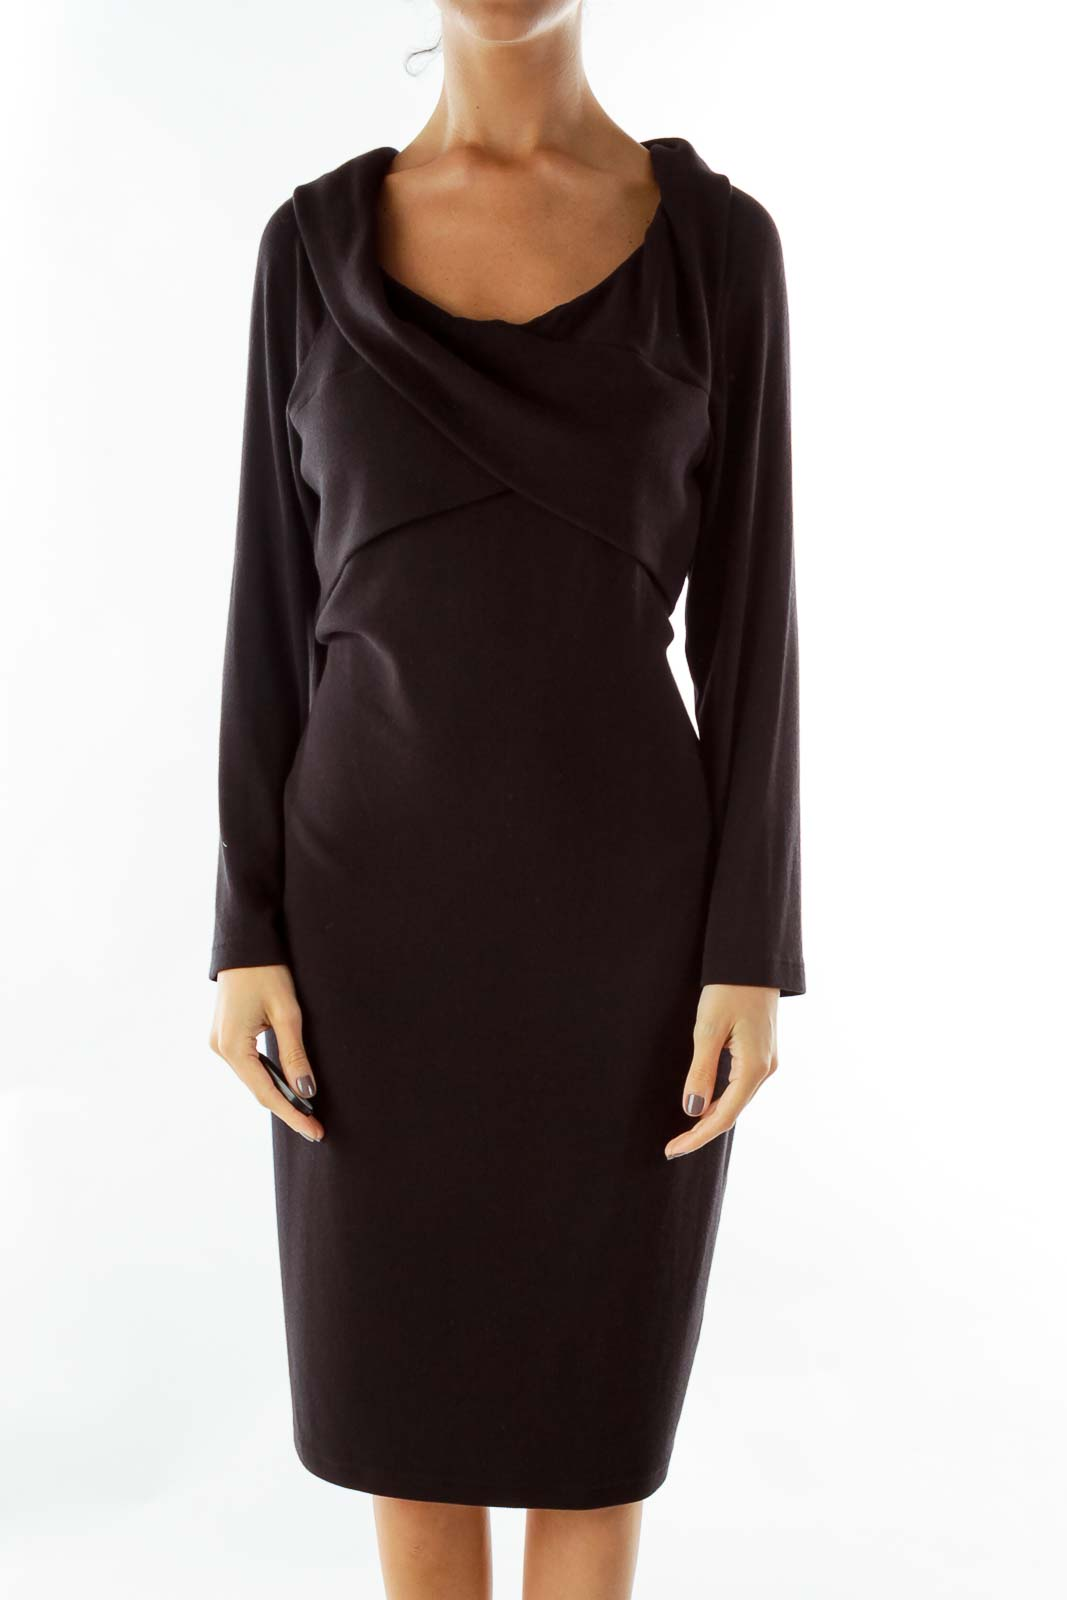 Black Asymmetric Dress Front